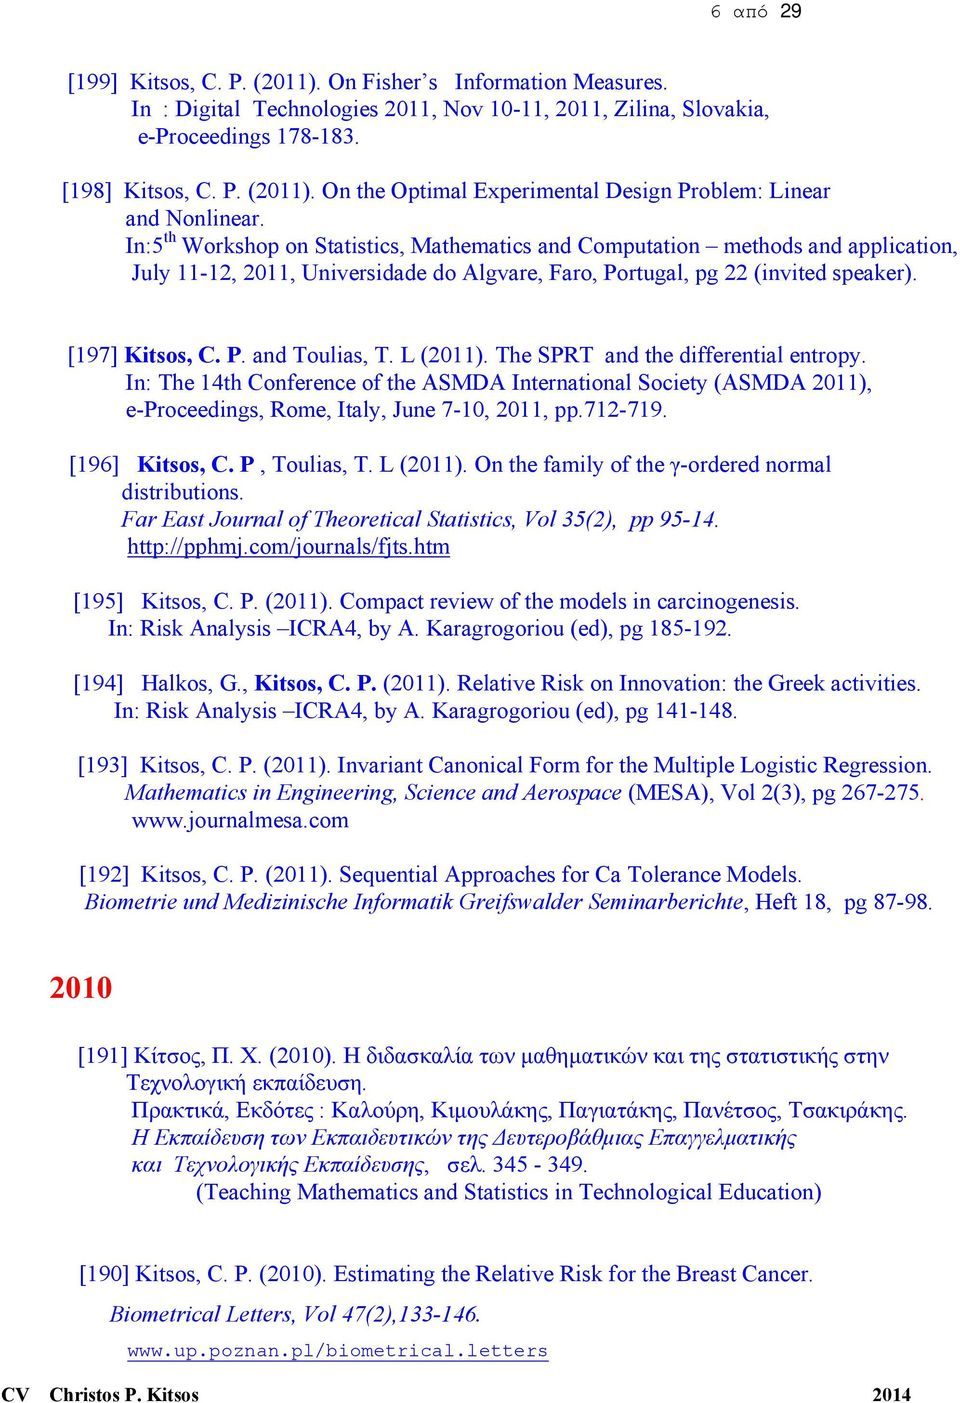 L (2011). The SPRT and the differential entropy. In: The 14th Conference of the ASMDA International Society (ASMDA 2011), e-proceedings, Rome, Italy, June 7-10, 2011, pp.712-719. [196] Kitsos, C.